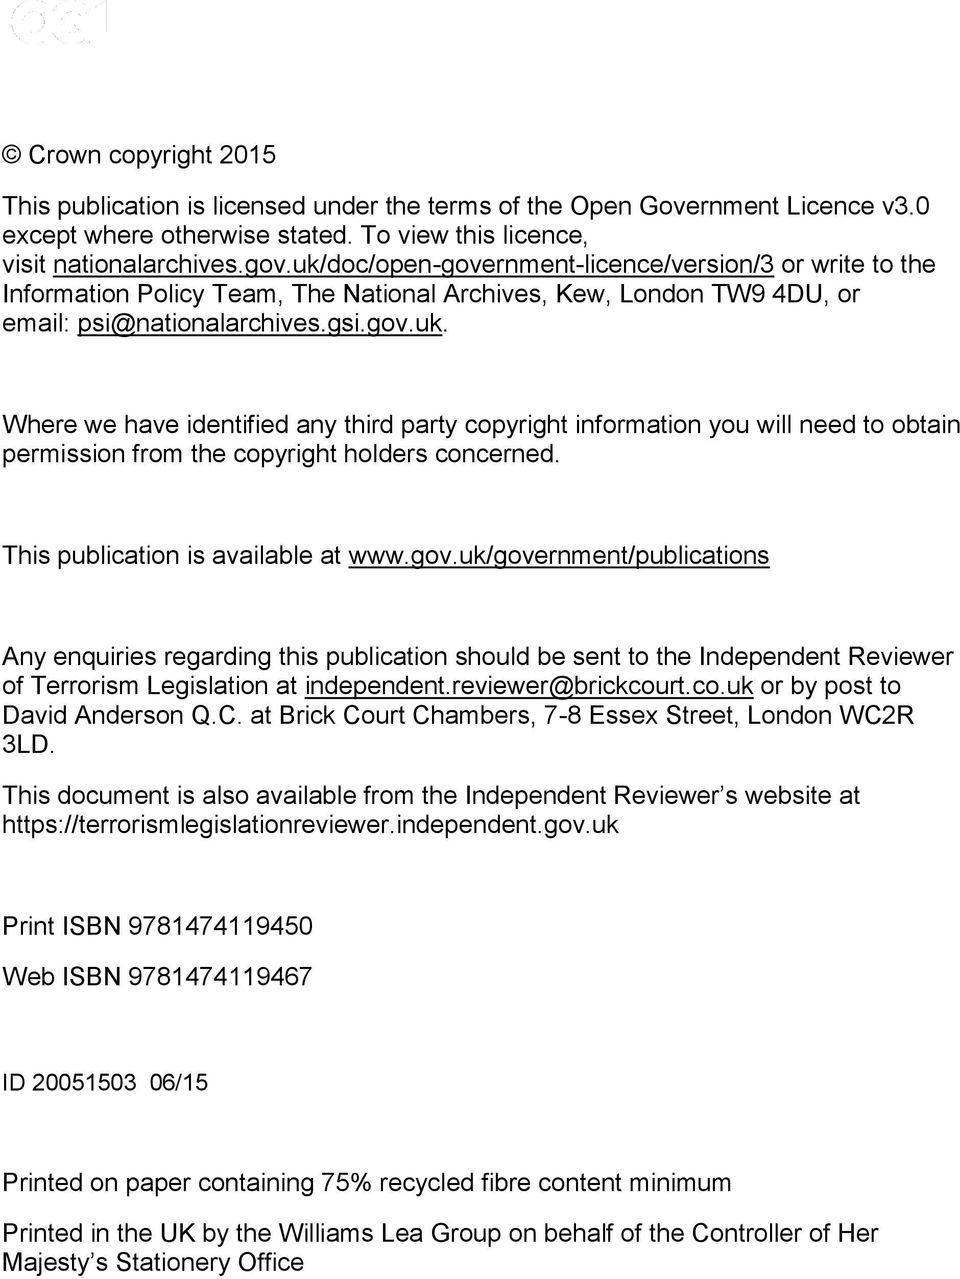 This publication is available at www.gov.uk/government/publications Any enquiries regarding this publication should be sent to the Independent Reviewer of Terrorism Legislation at independent.